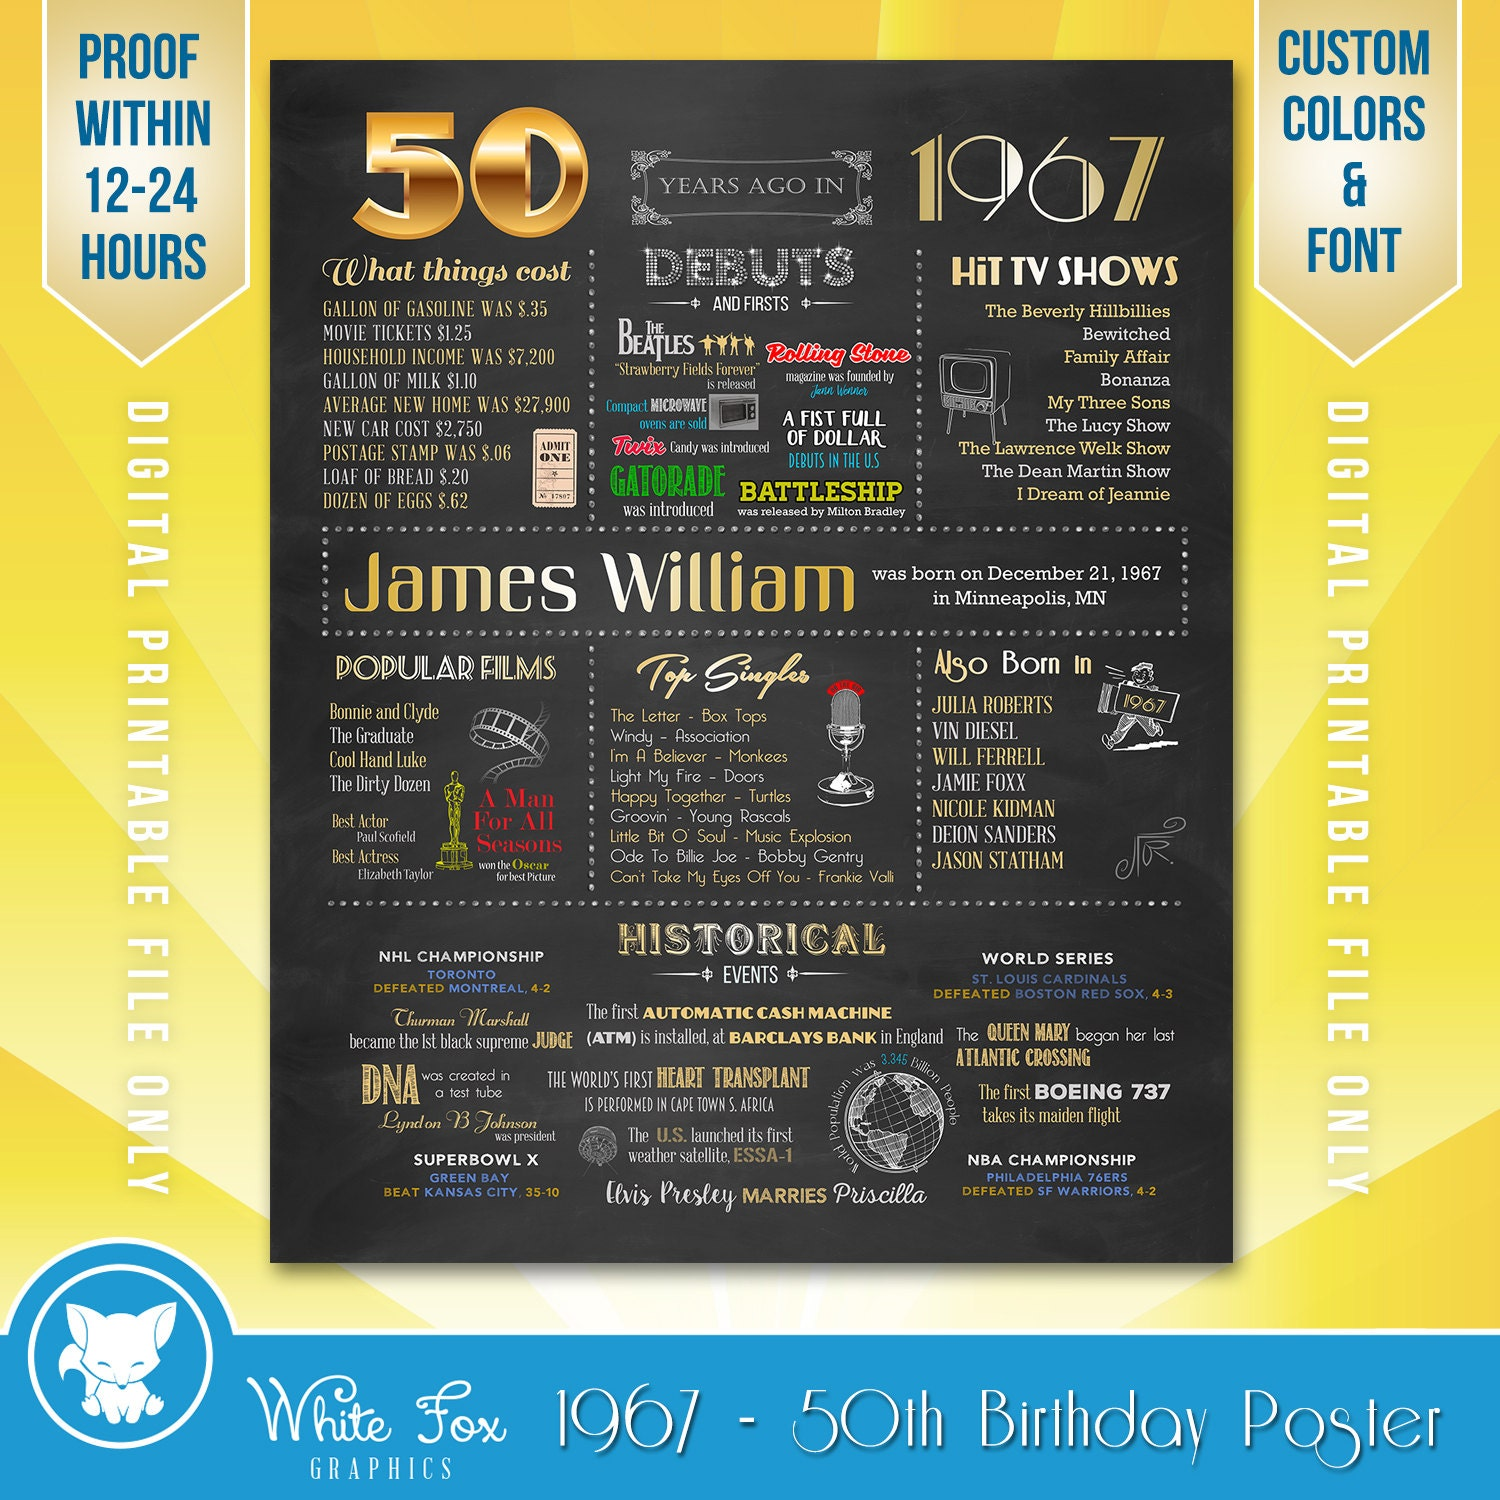 50th Birthday Gift Personalized 50th Birthday Poster 50th